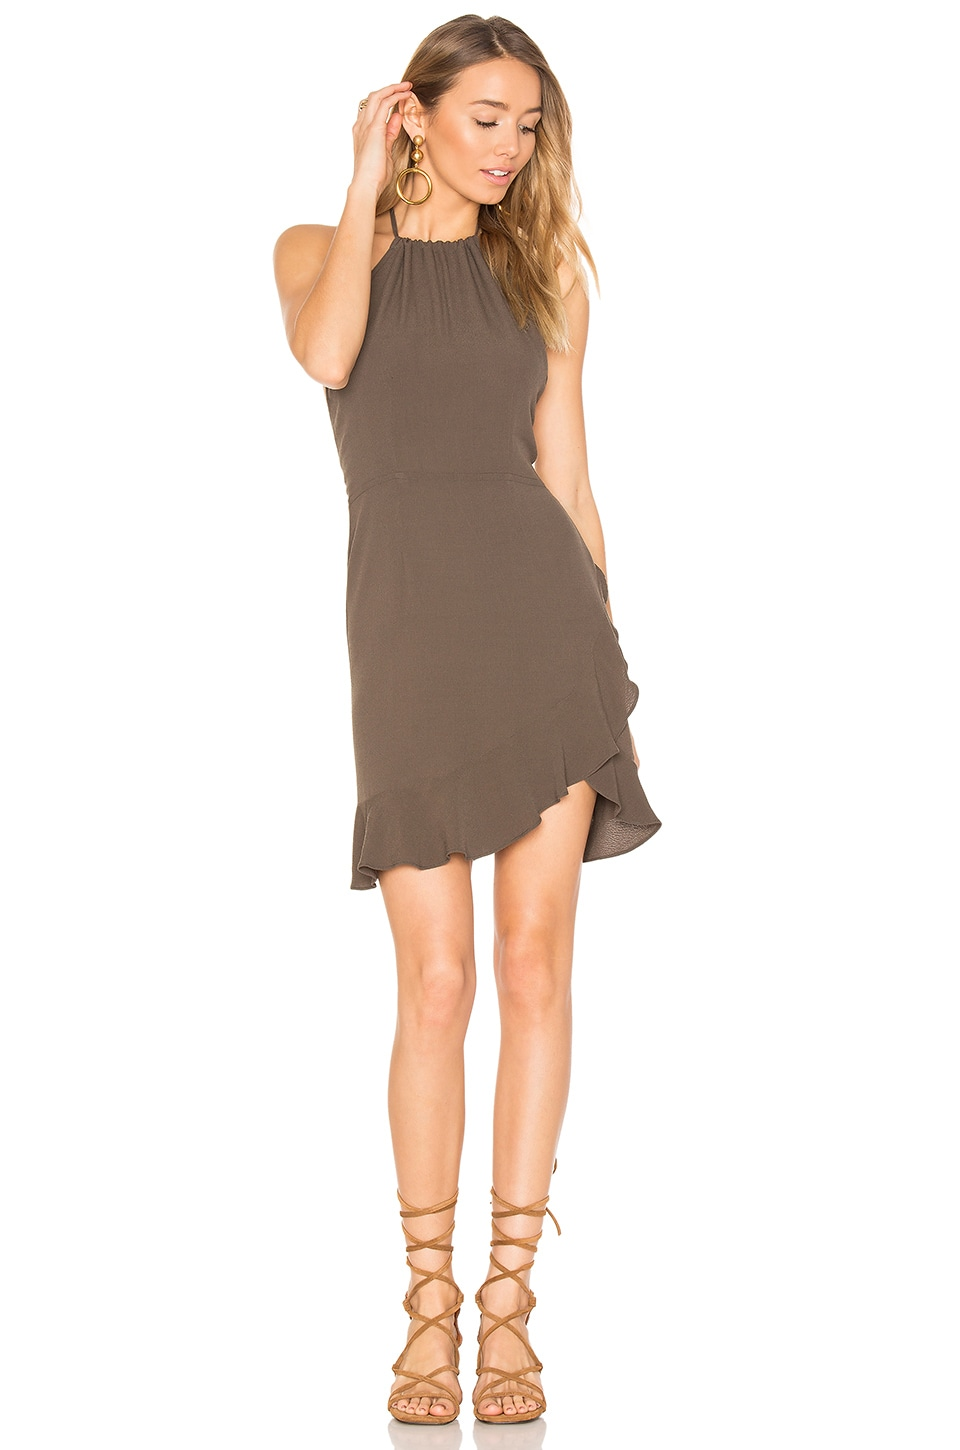 FLYNN SKYE Monica Mini Dress in Forest